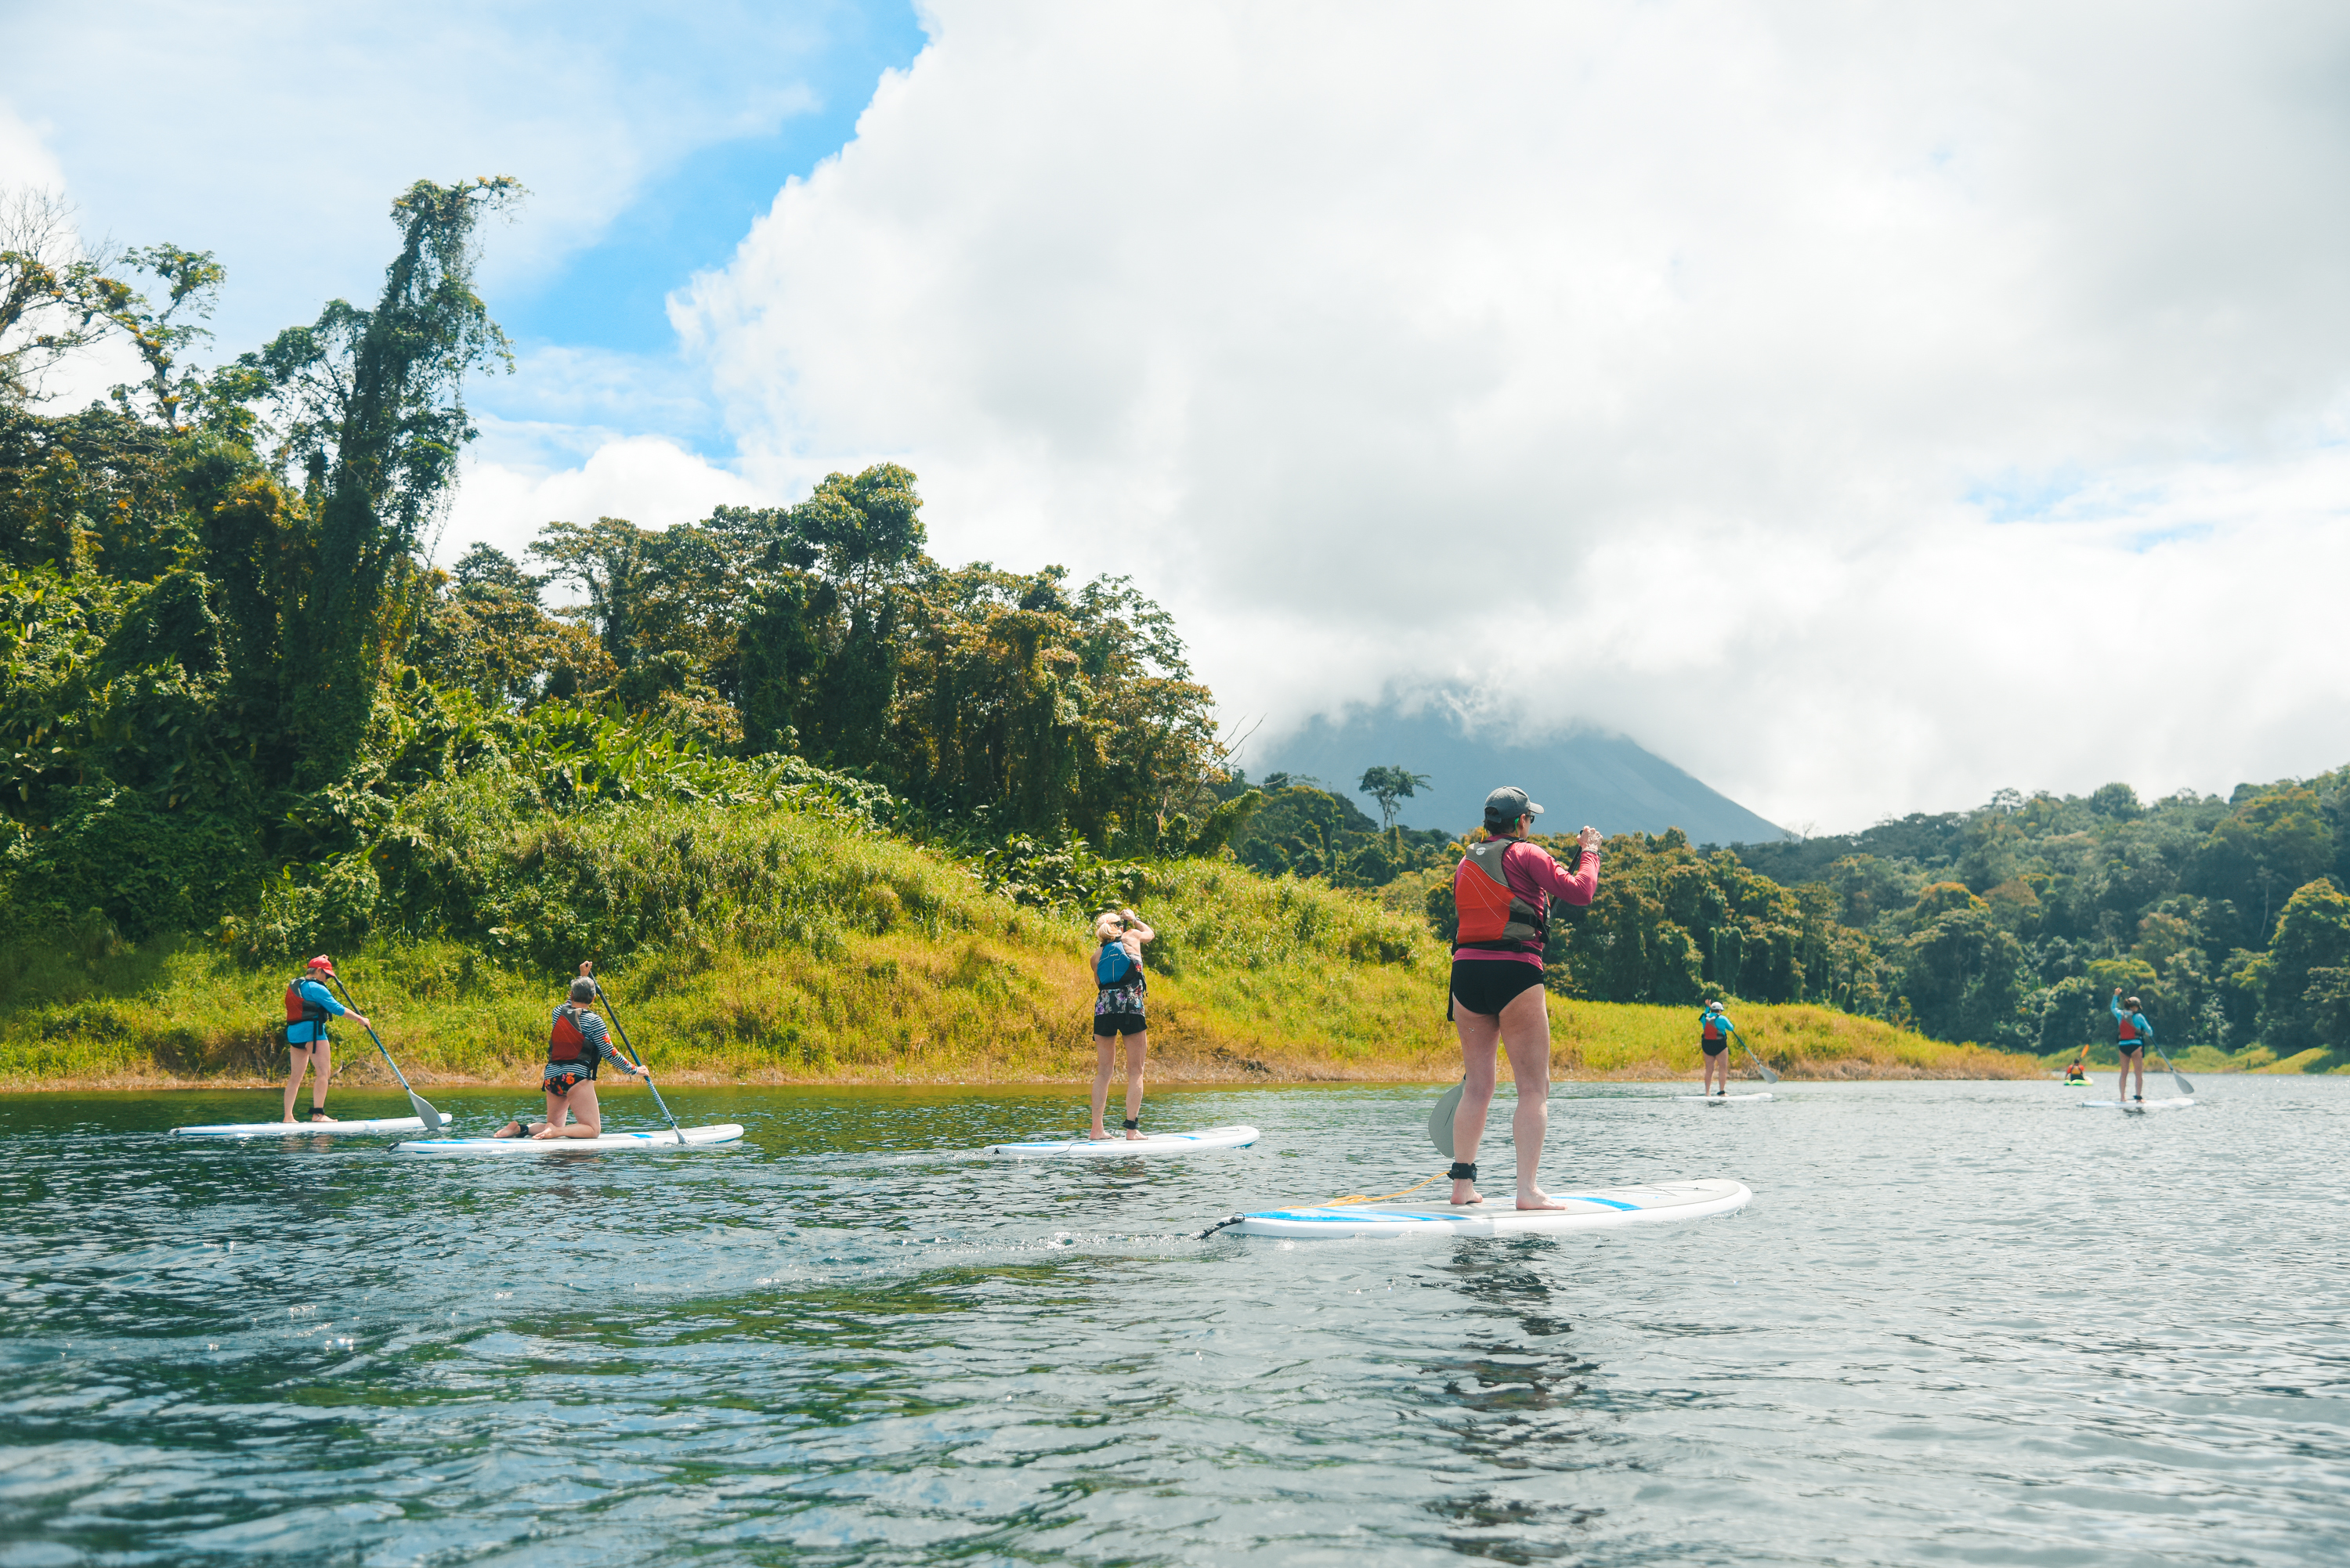 Time to Paddle! Discover Costa Rica and join us here at Desafio Adventure Company